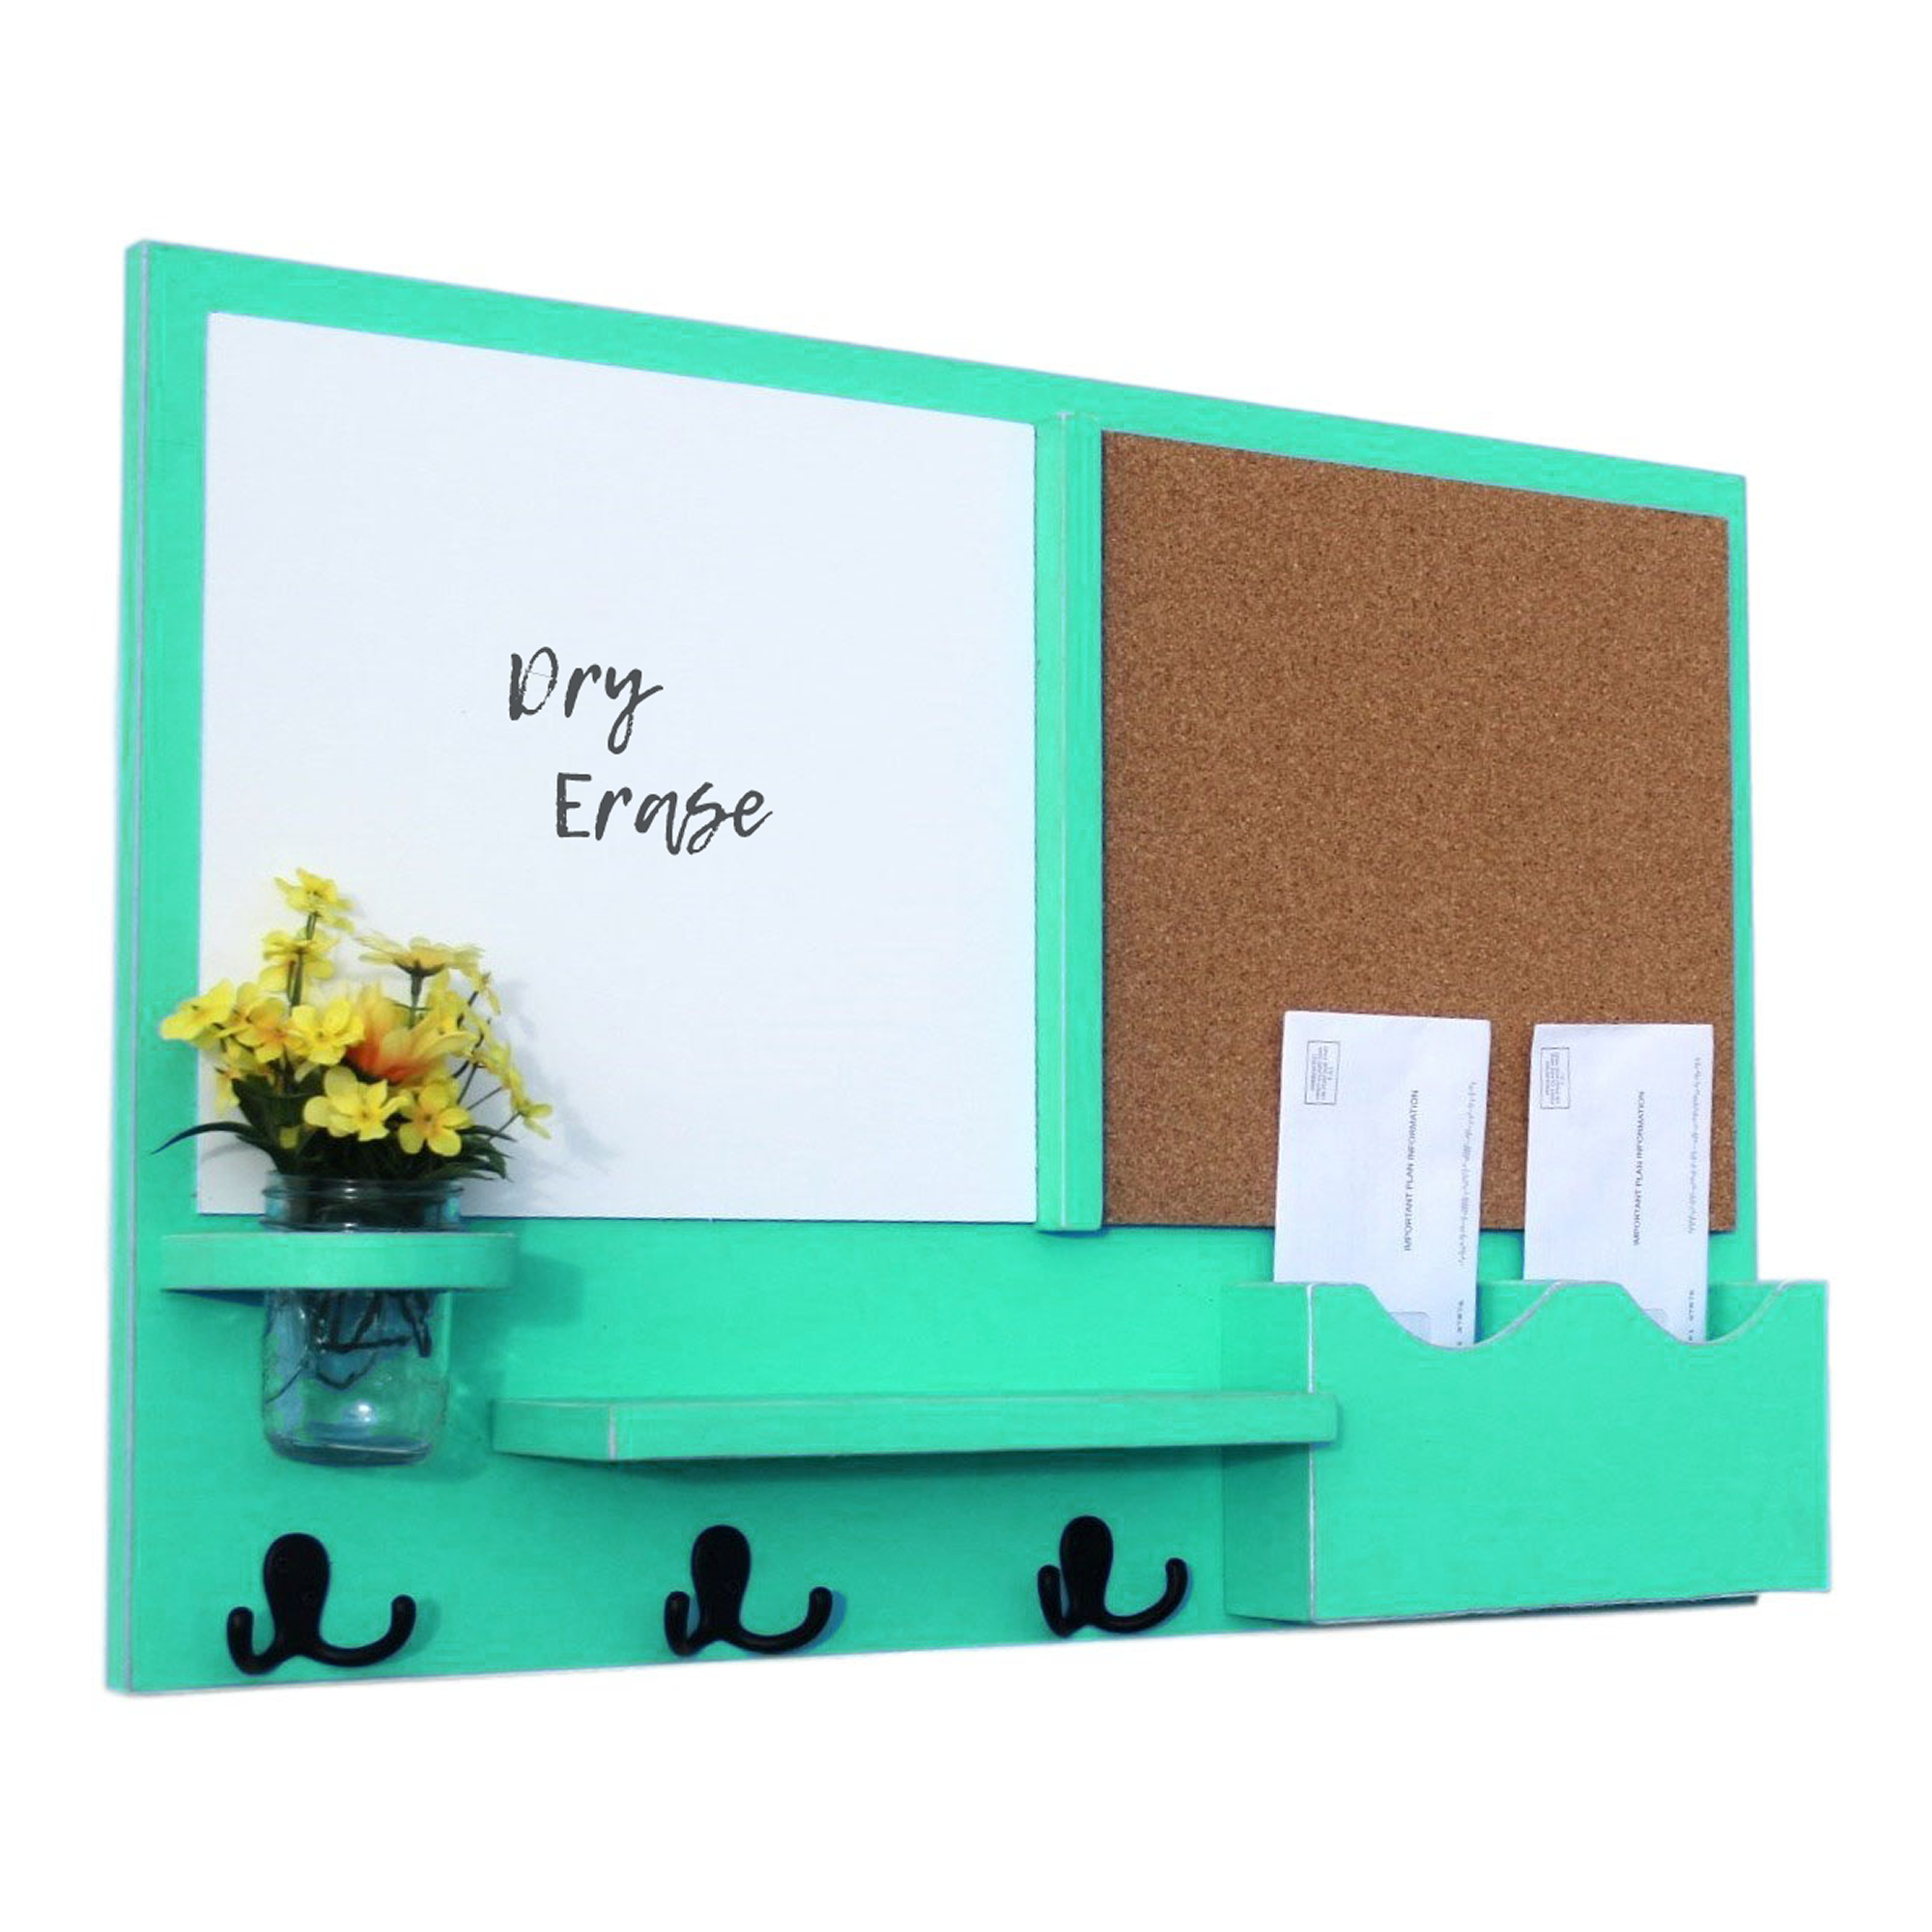 Message Center White Board & Cork Board Letter Holder with Coat Hooks & Mason Jar